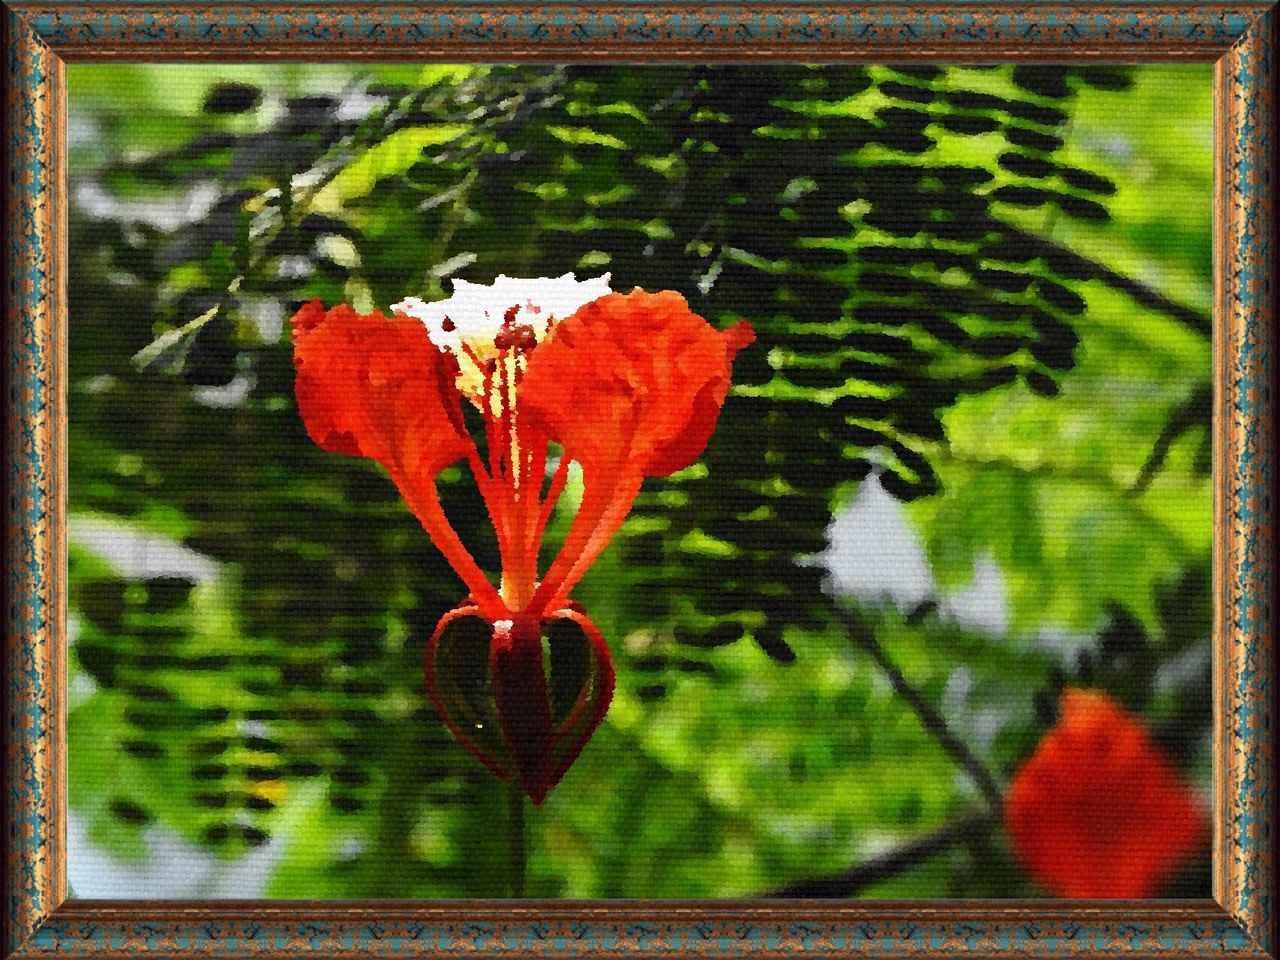 growth, plant, flower, nature, fragility, freshness, day, outdoors, no people, petal, beauty in nature, focus on foreground, leaf, close-up, blooming, red, flower head